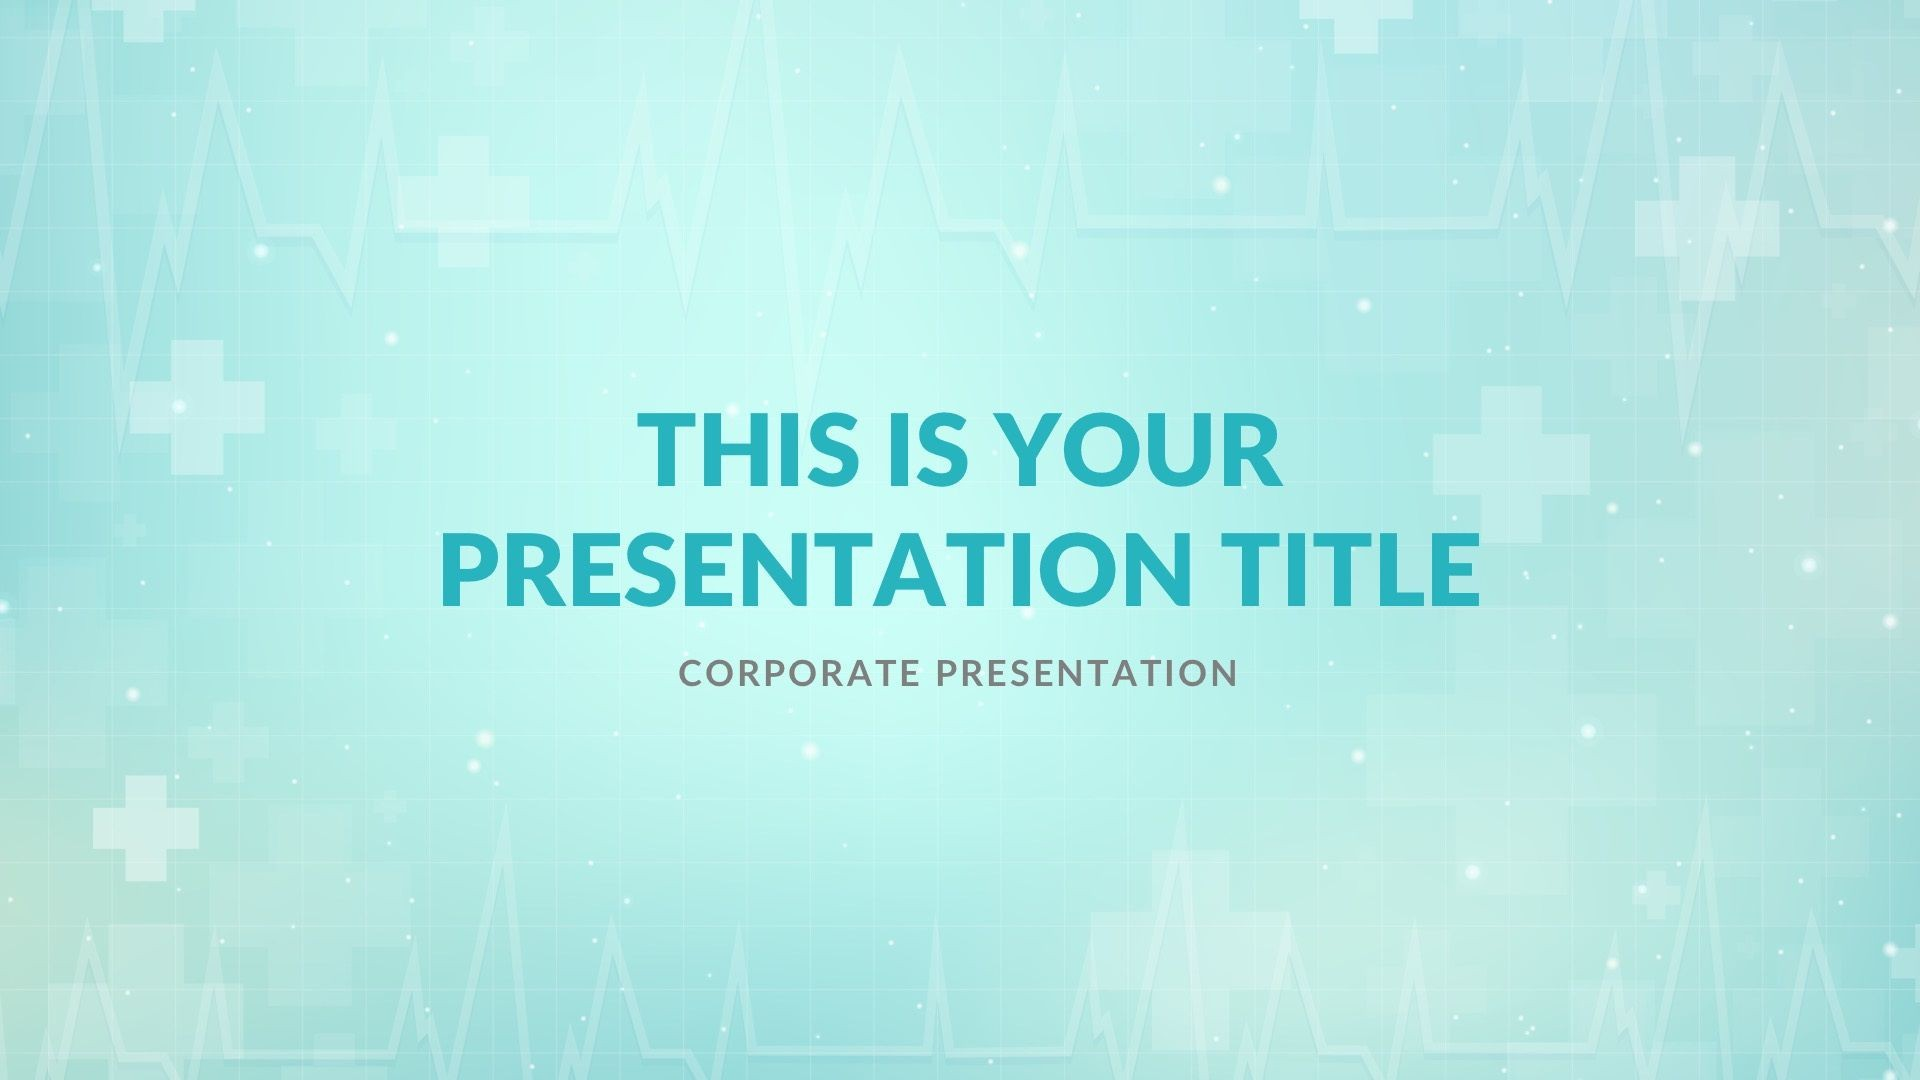 002 Imposing Powerpoint Presentation Template Free Download Medical Photo  Animated1920